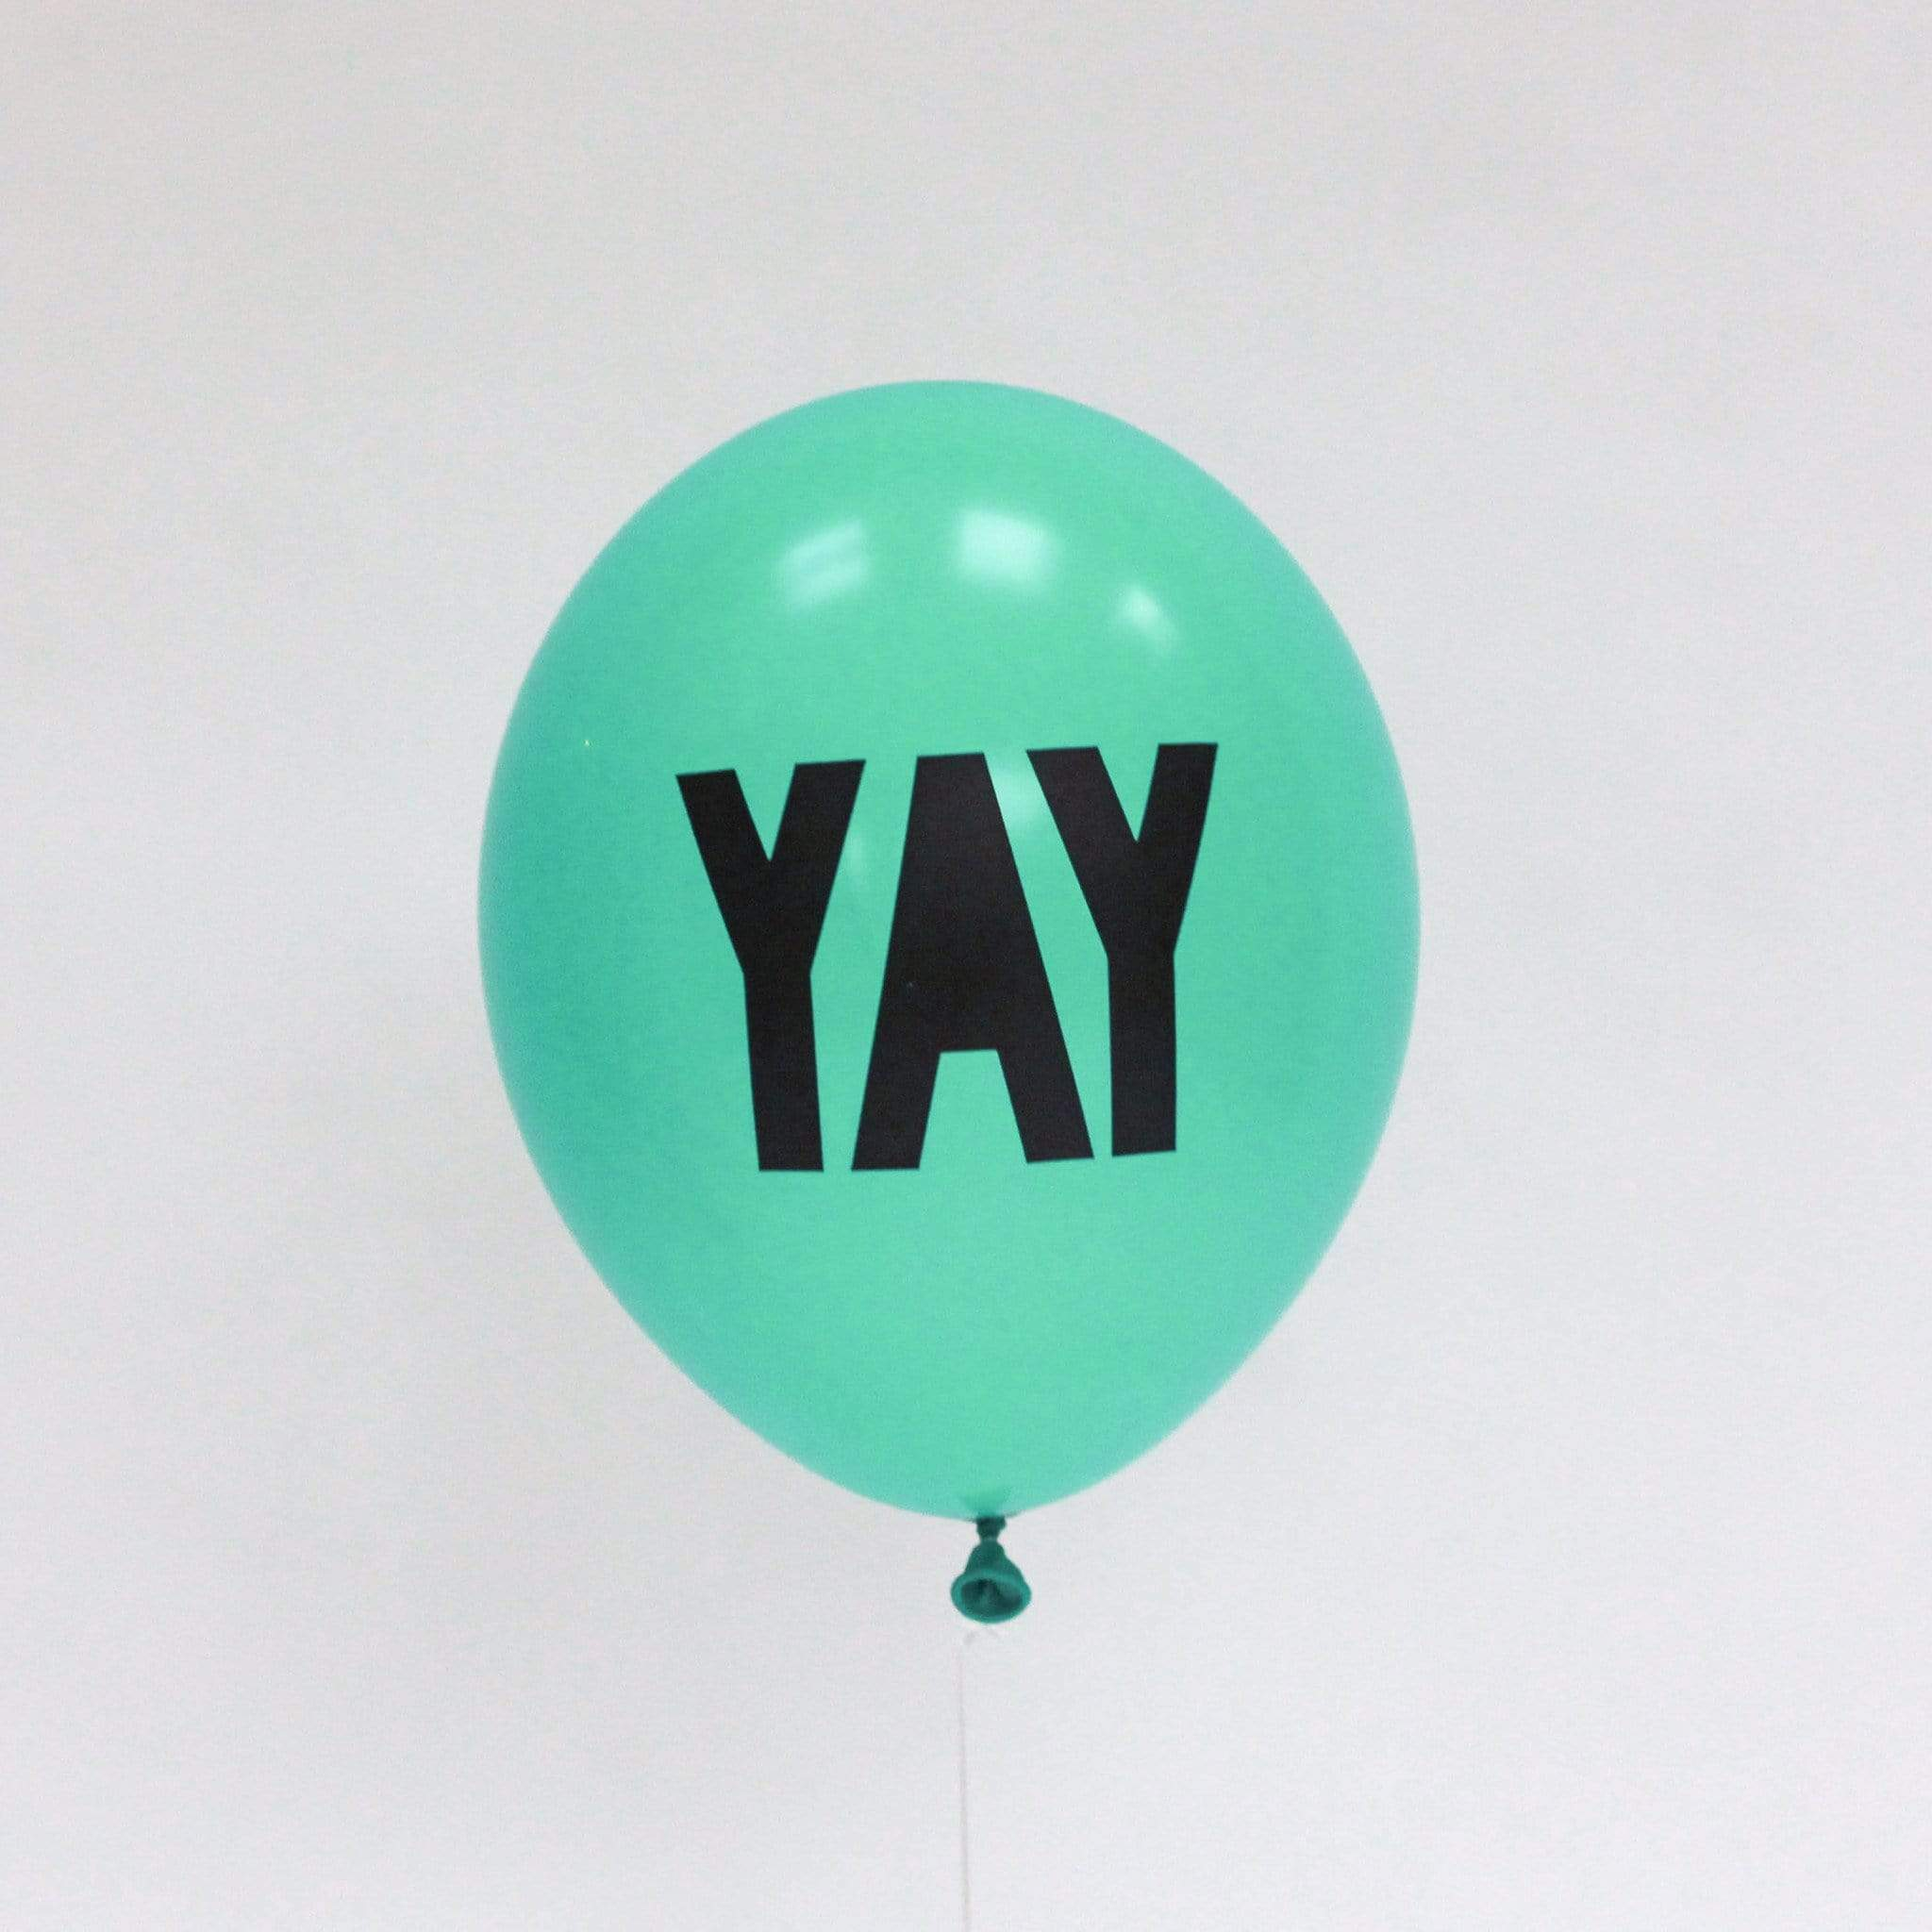 Mint Yay Balloons | Cool Balloons with YAY Script Writing